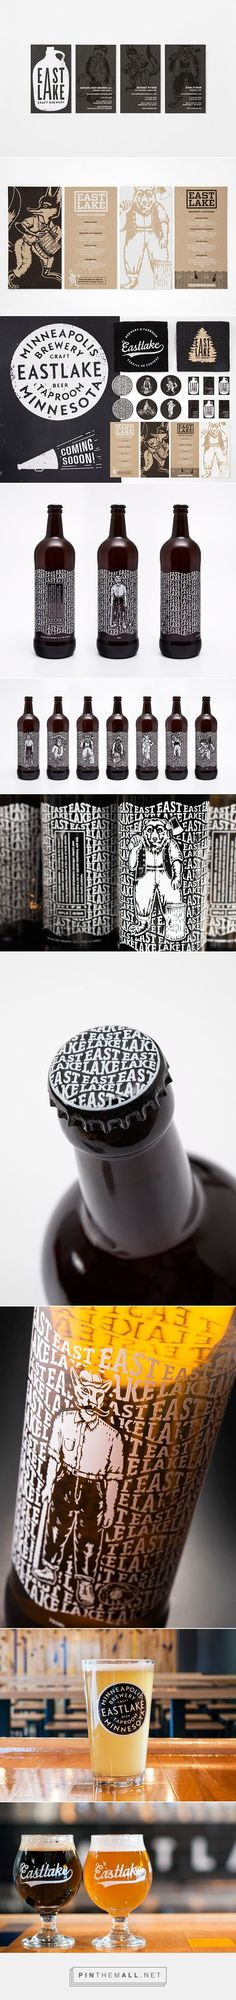 Eastlake Craft Brewery packaging branding on Behance by Rice Creative curated by Packaging Diva PD. Who wants a glass of beer now?